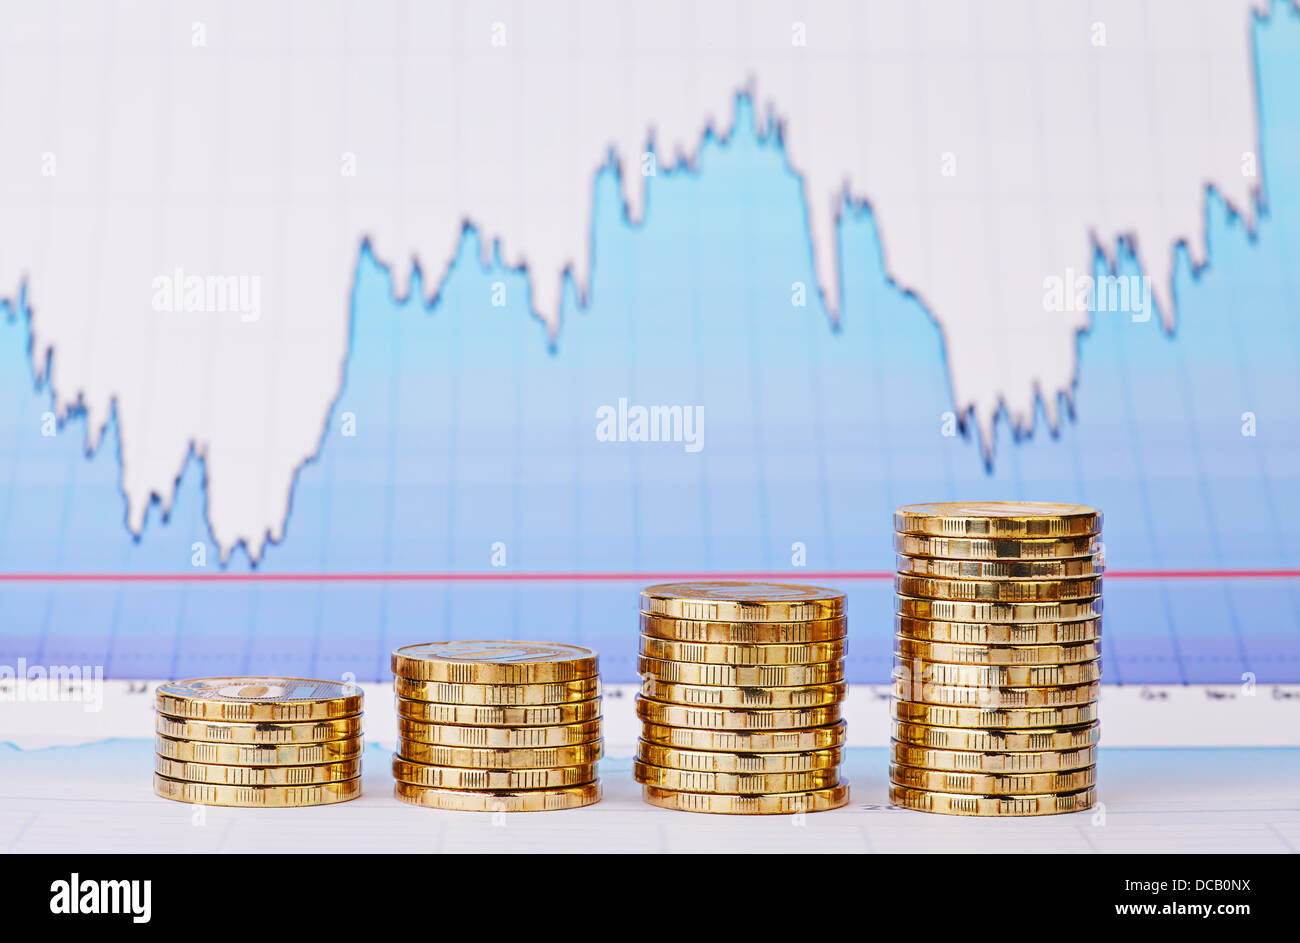 Uptrend stacks of golden coins and financial chart as background. Selective focus - Stock Image